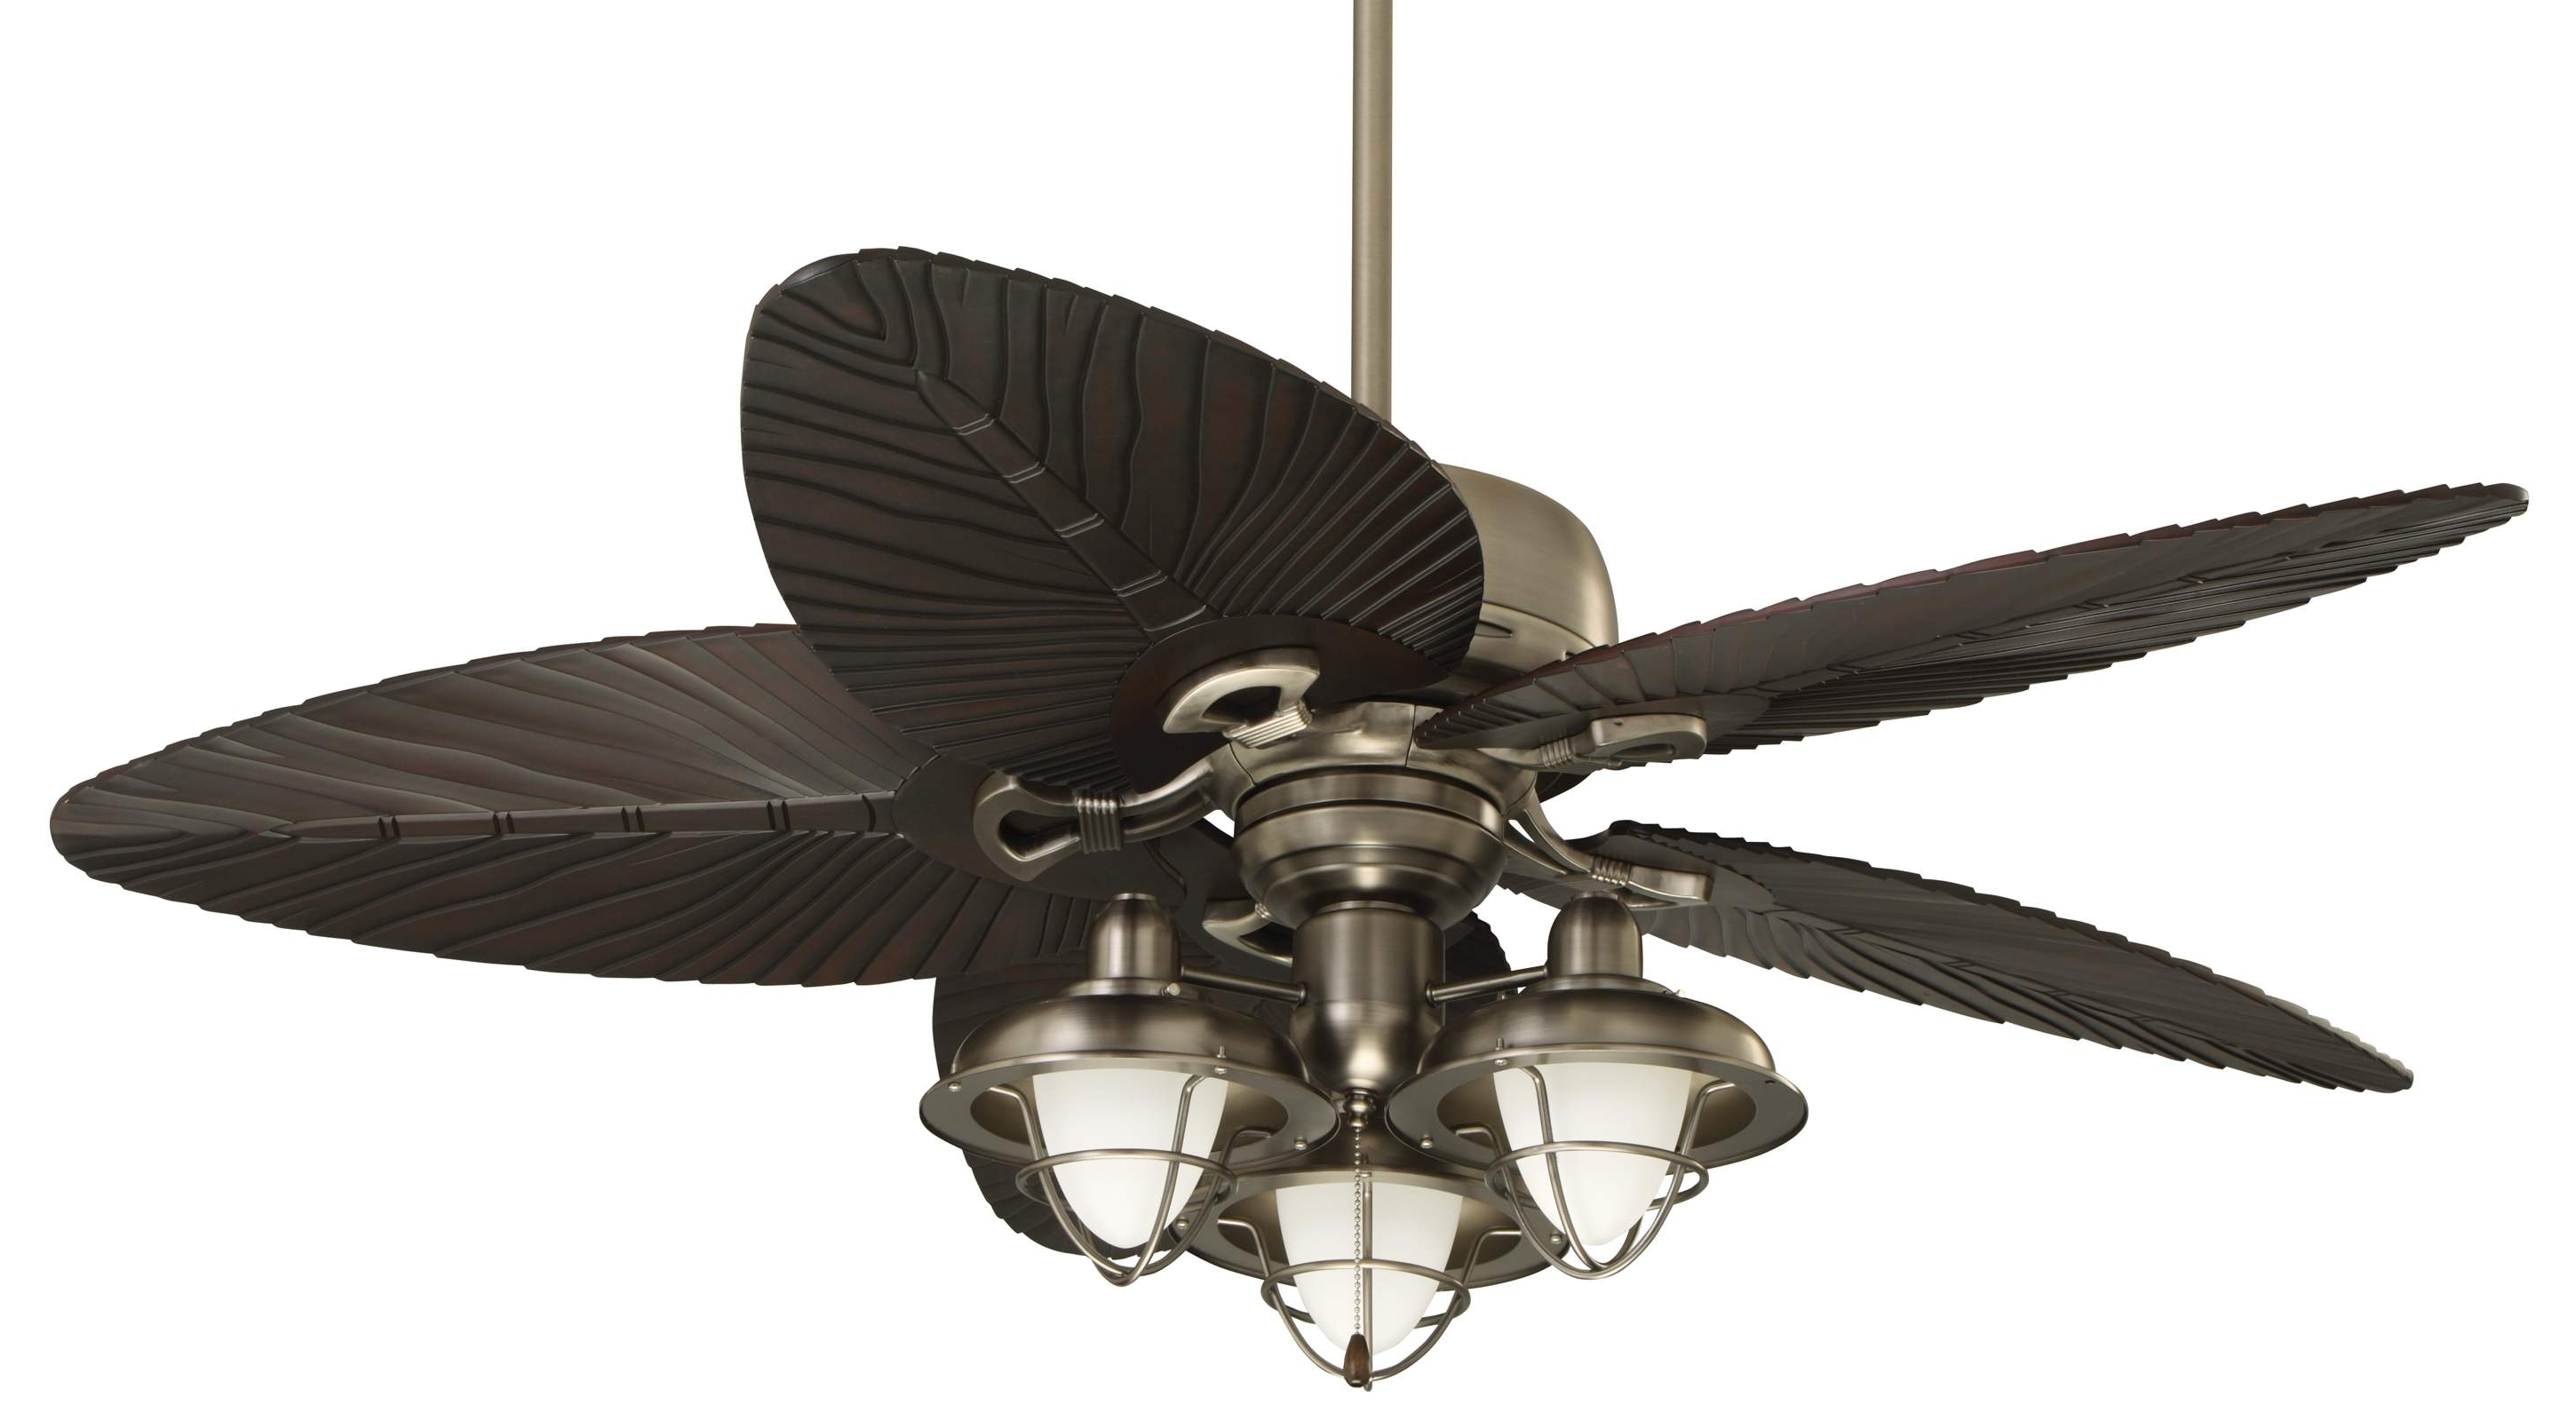 Decor: Bring An Island Look Into Your Home With Cool Ceiling Fan With Newest Leaf Blades Outdoor Ceiling Fans (View 4 of 20)